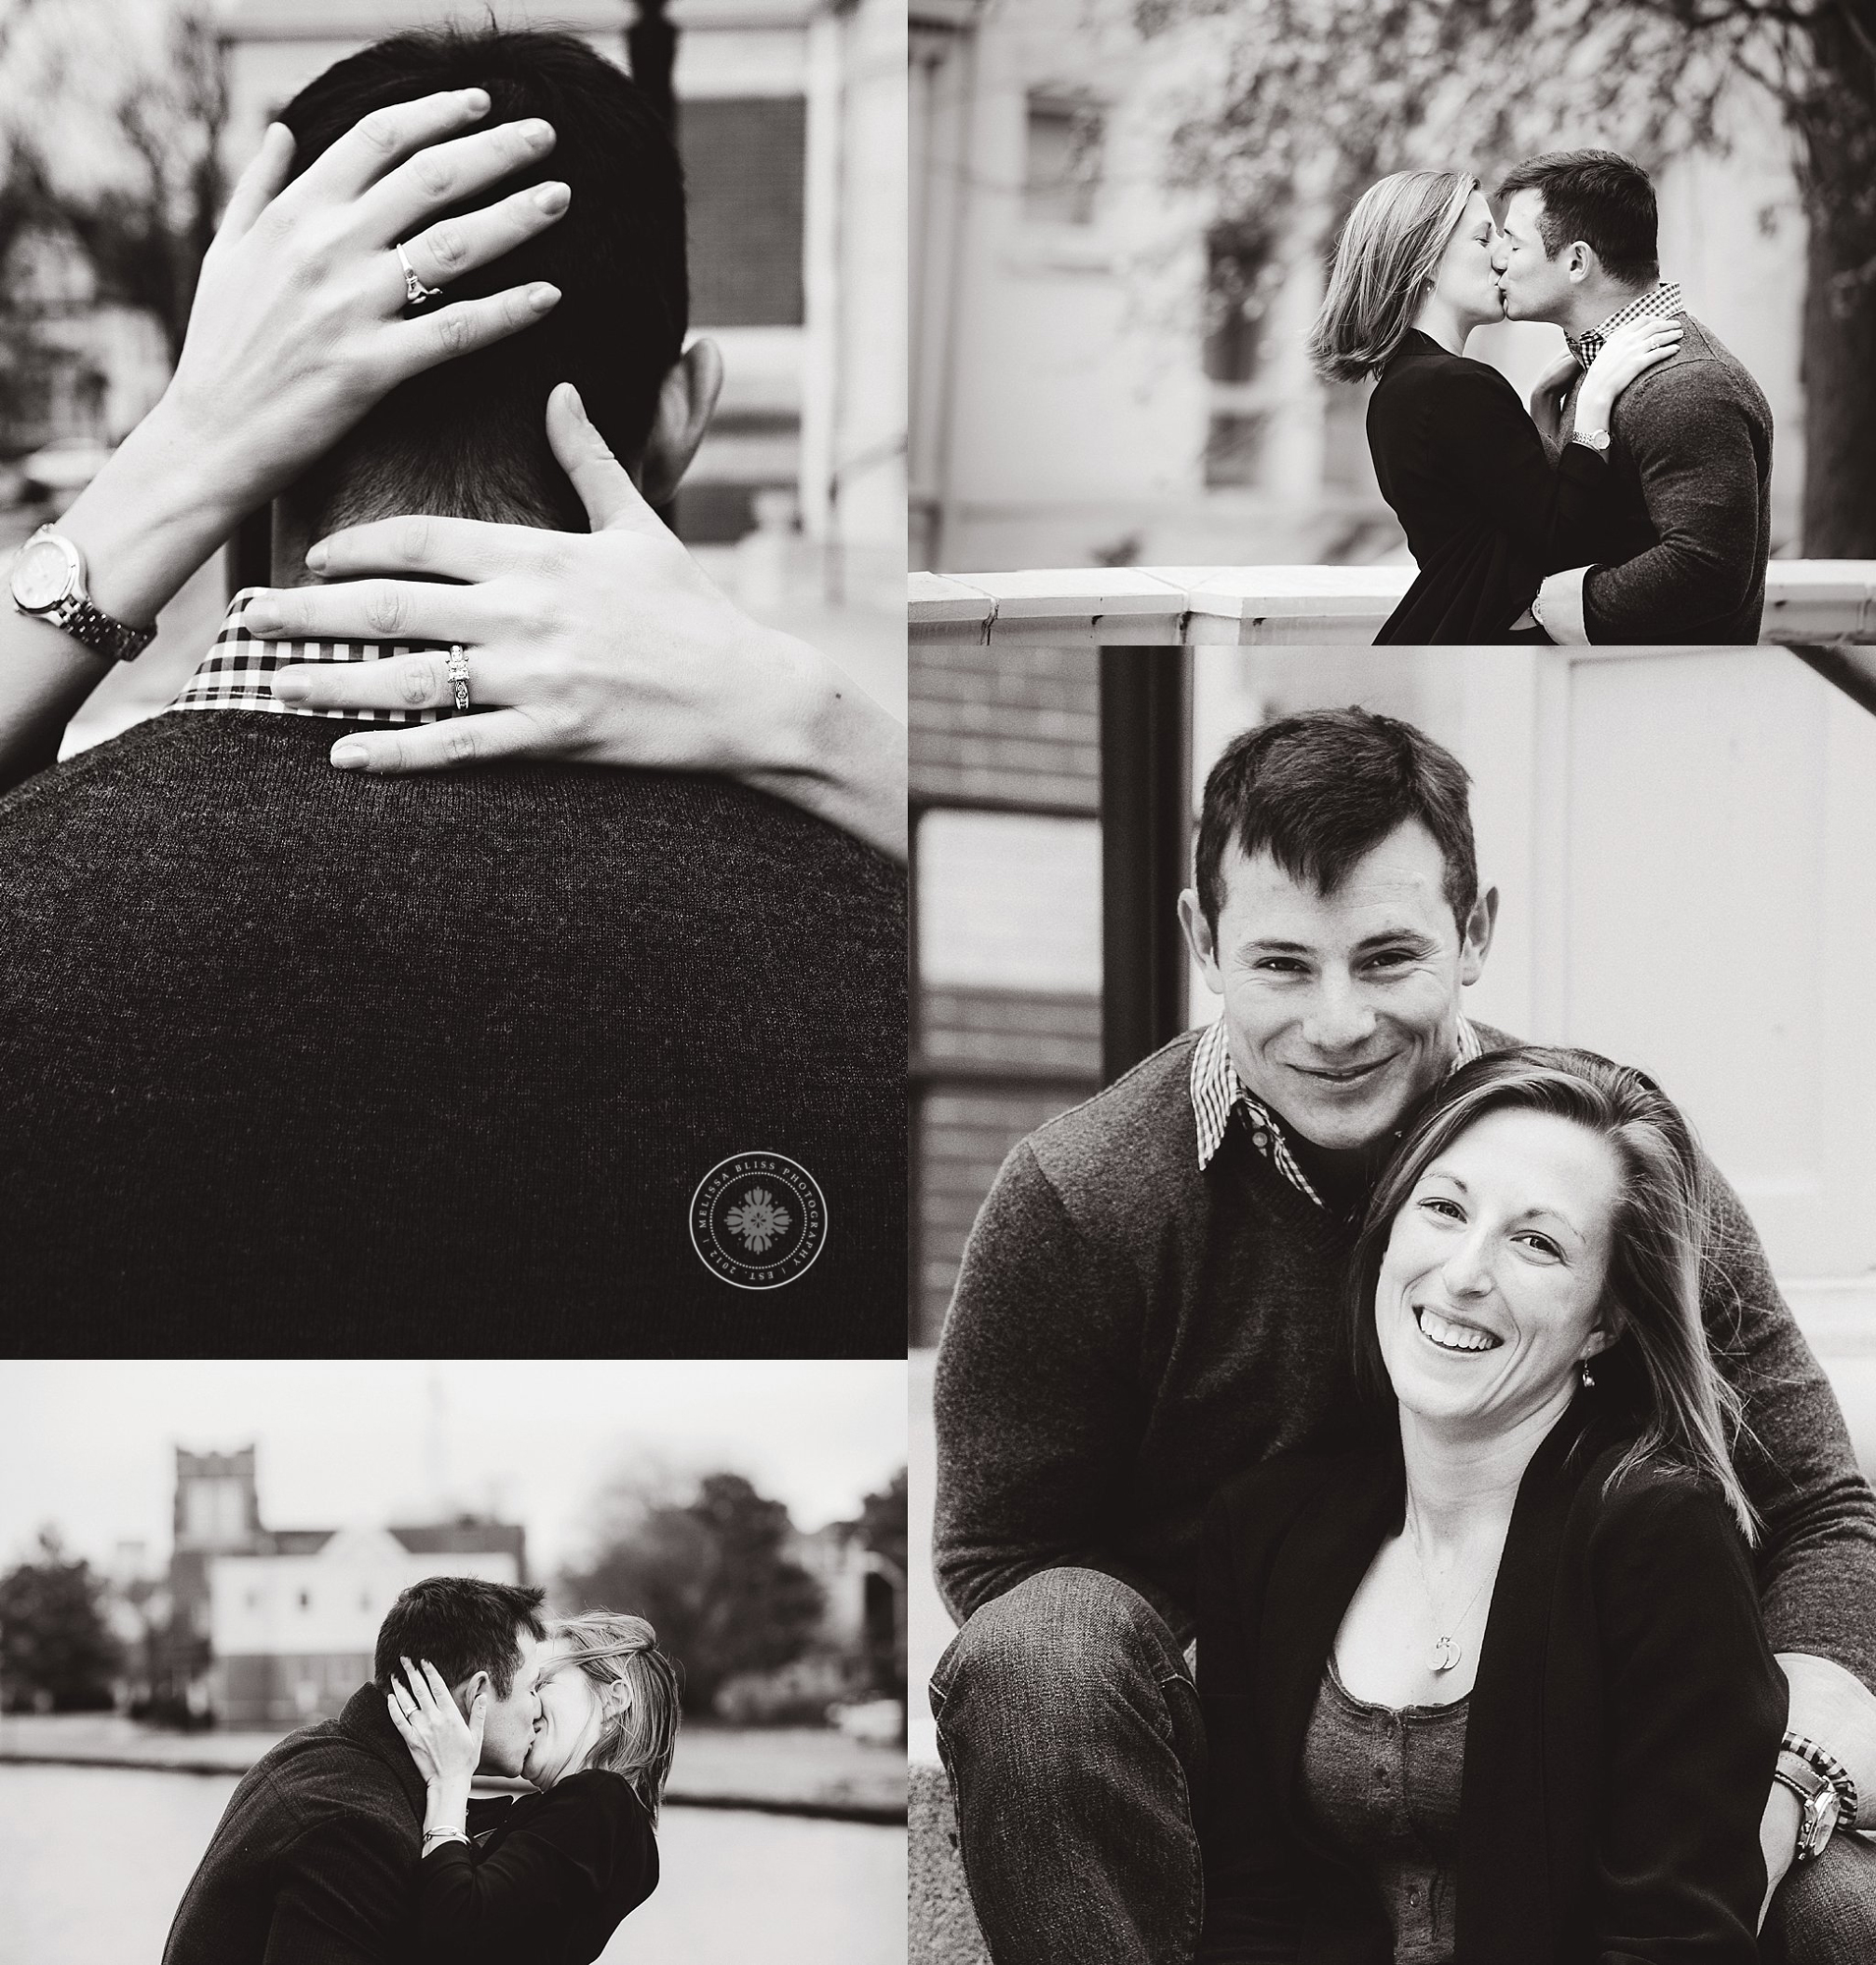 professional-wedding-photographer-norfolk-va-engagement-photos-downtown-norfolk-wedding-photographer-melissa-bliss-photography